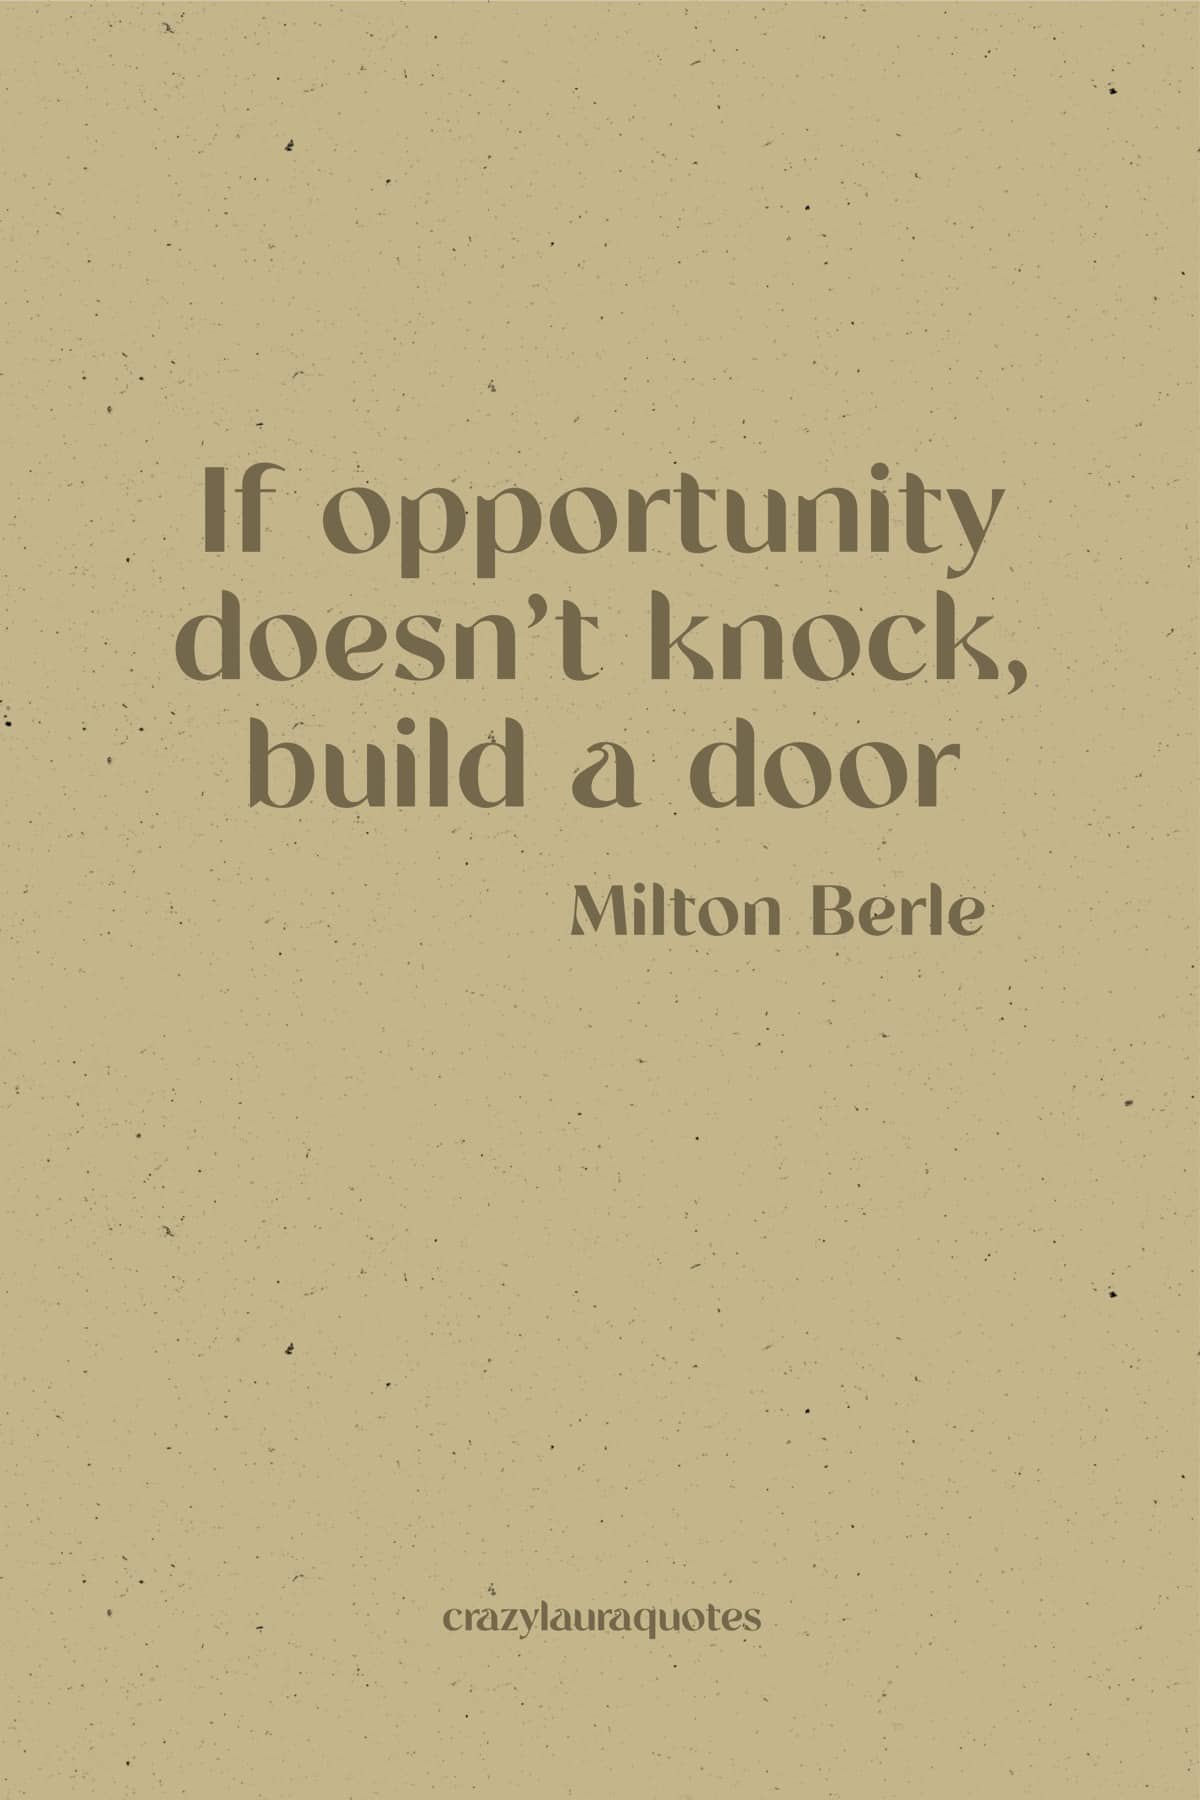 create opportunity quote for monday motivation